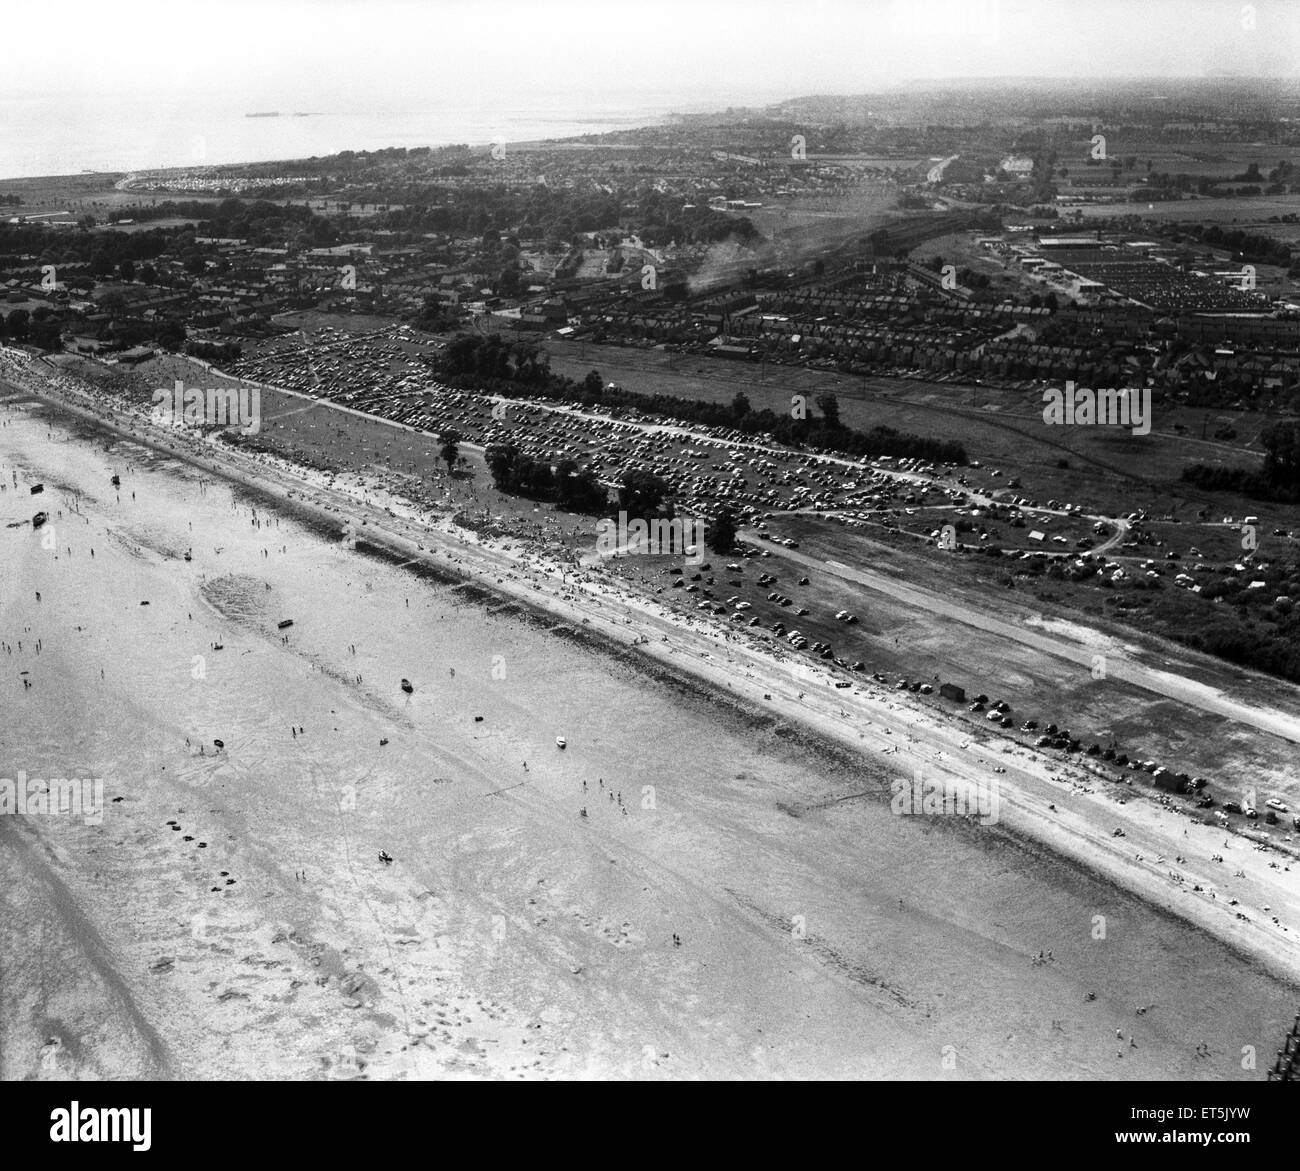 Aerial scenes of Southend Beach, Southend-on-Sea, Essex. 6th June 1960. - Stock Image